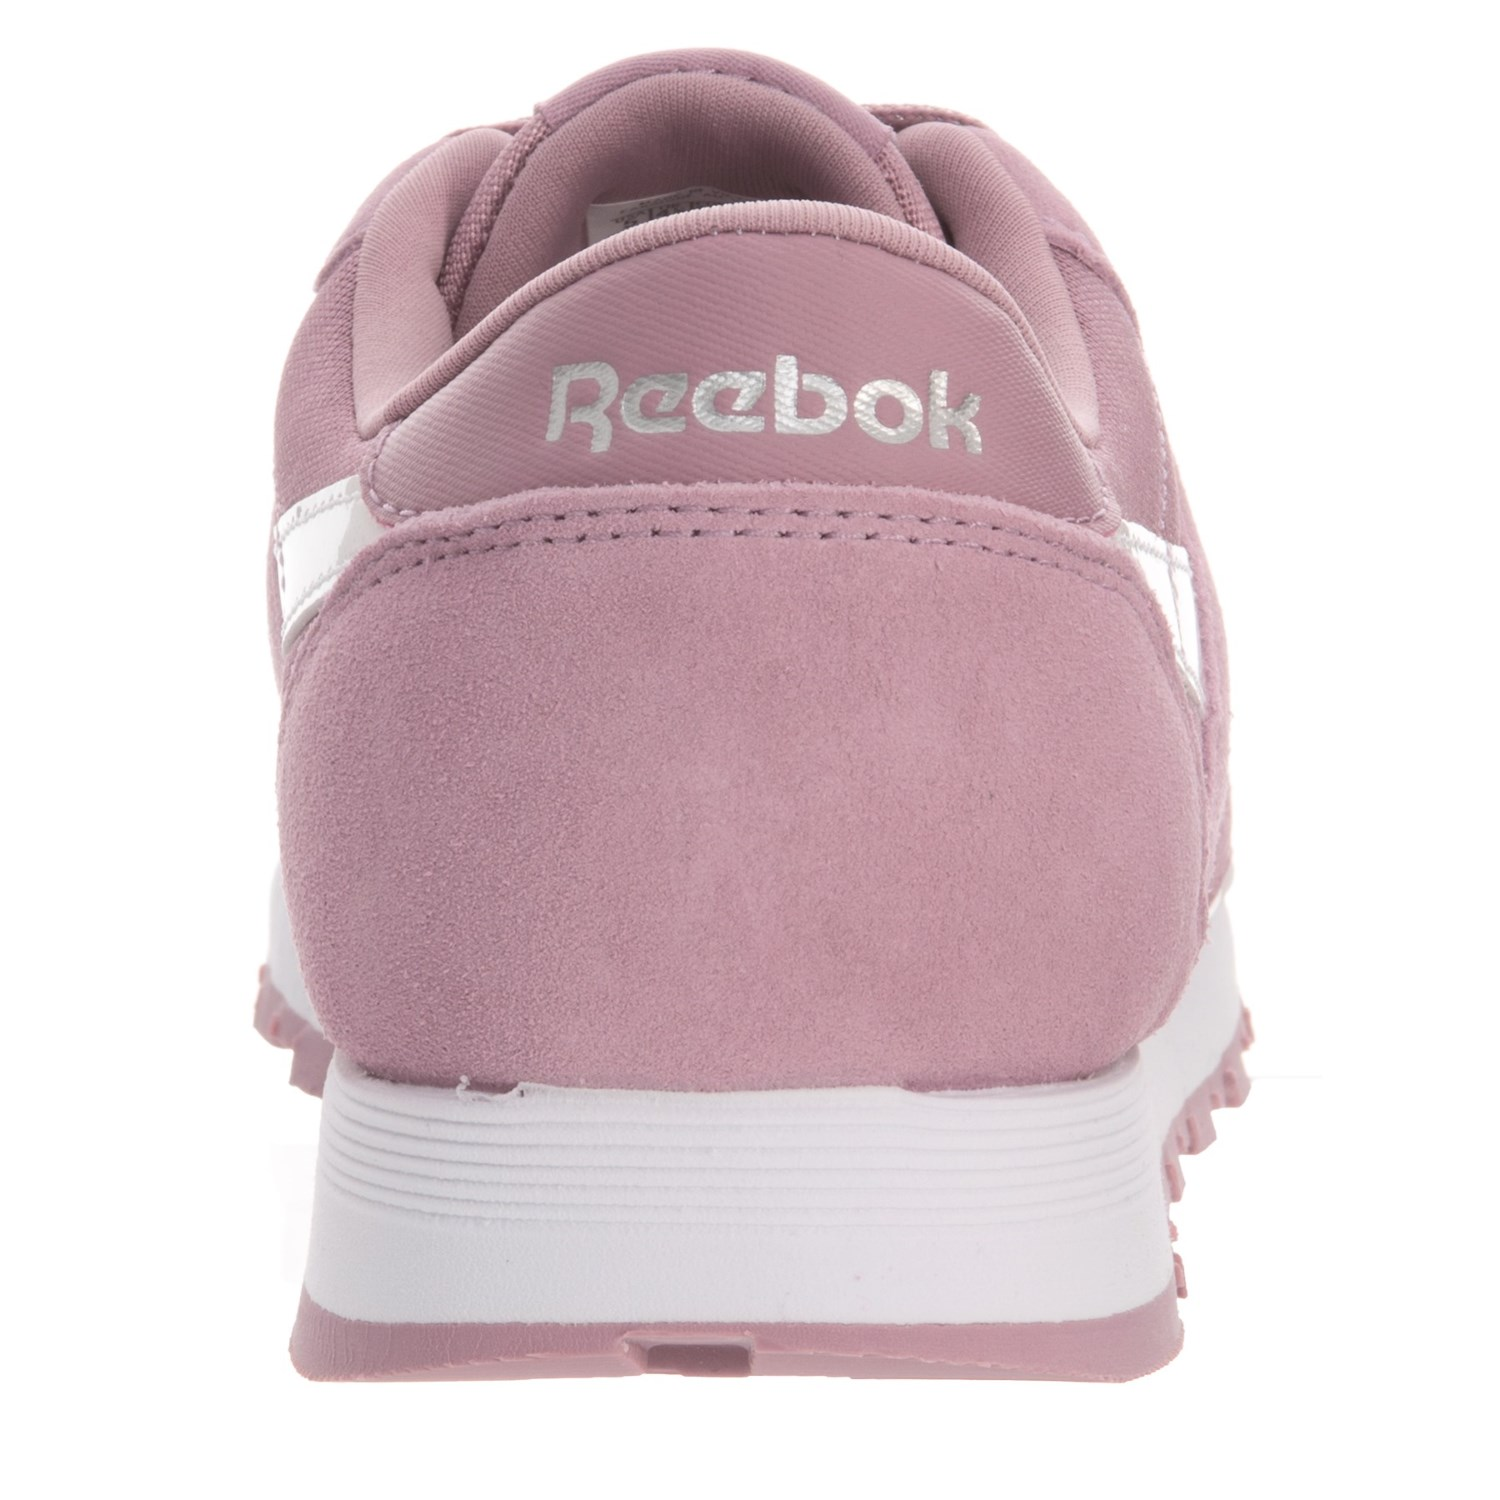 Reebok Classic Suede-Nylon Sneakers (For Big Girls) - Save 42% 499067159